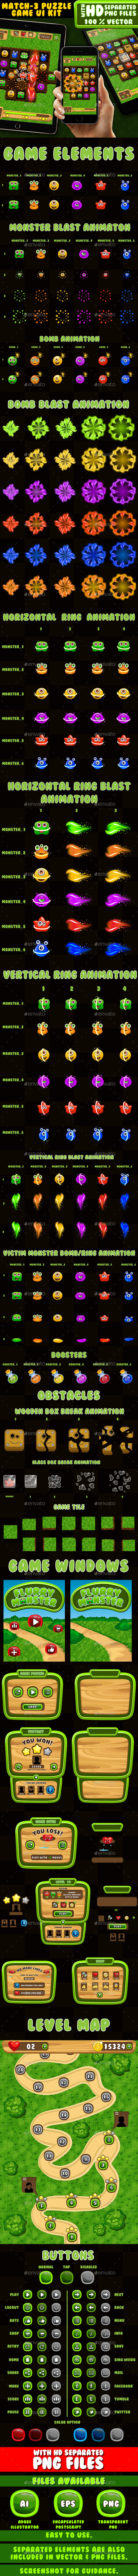 Monster Match-3 Puzzle Game UI Kit - Game Kits Game Assets